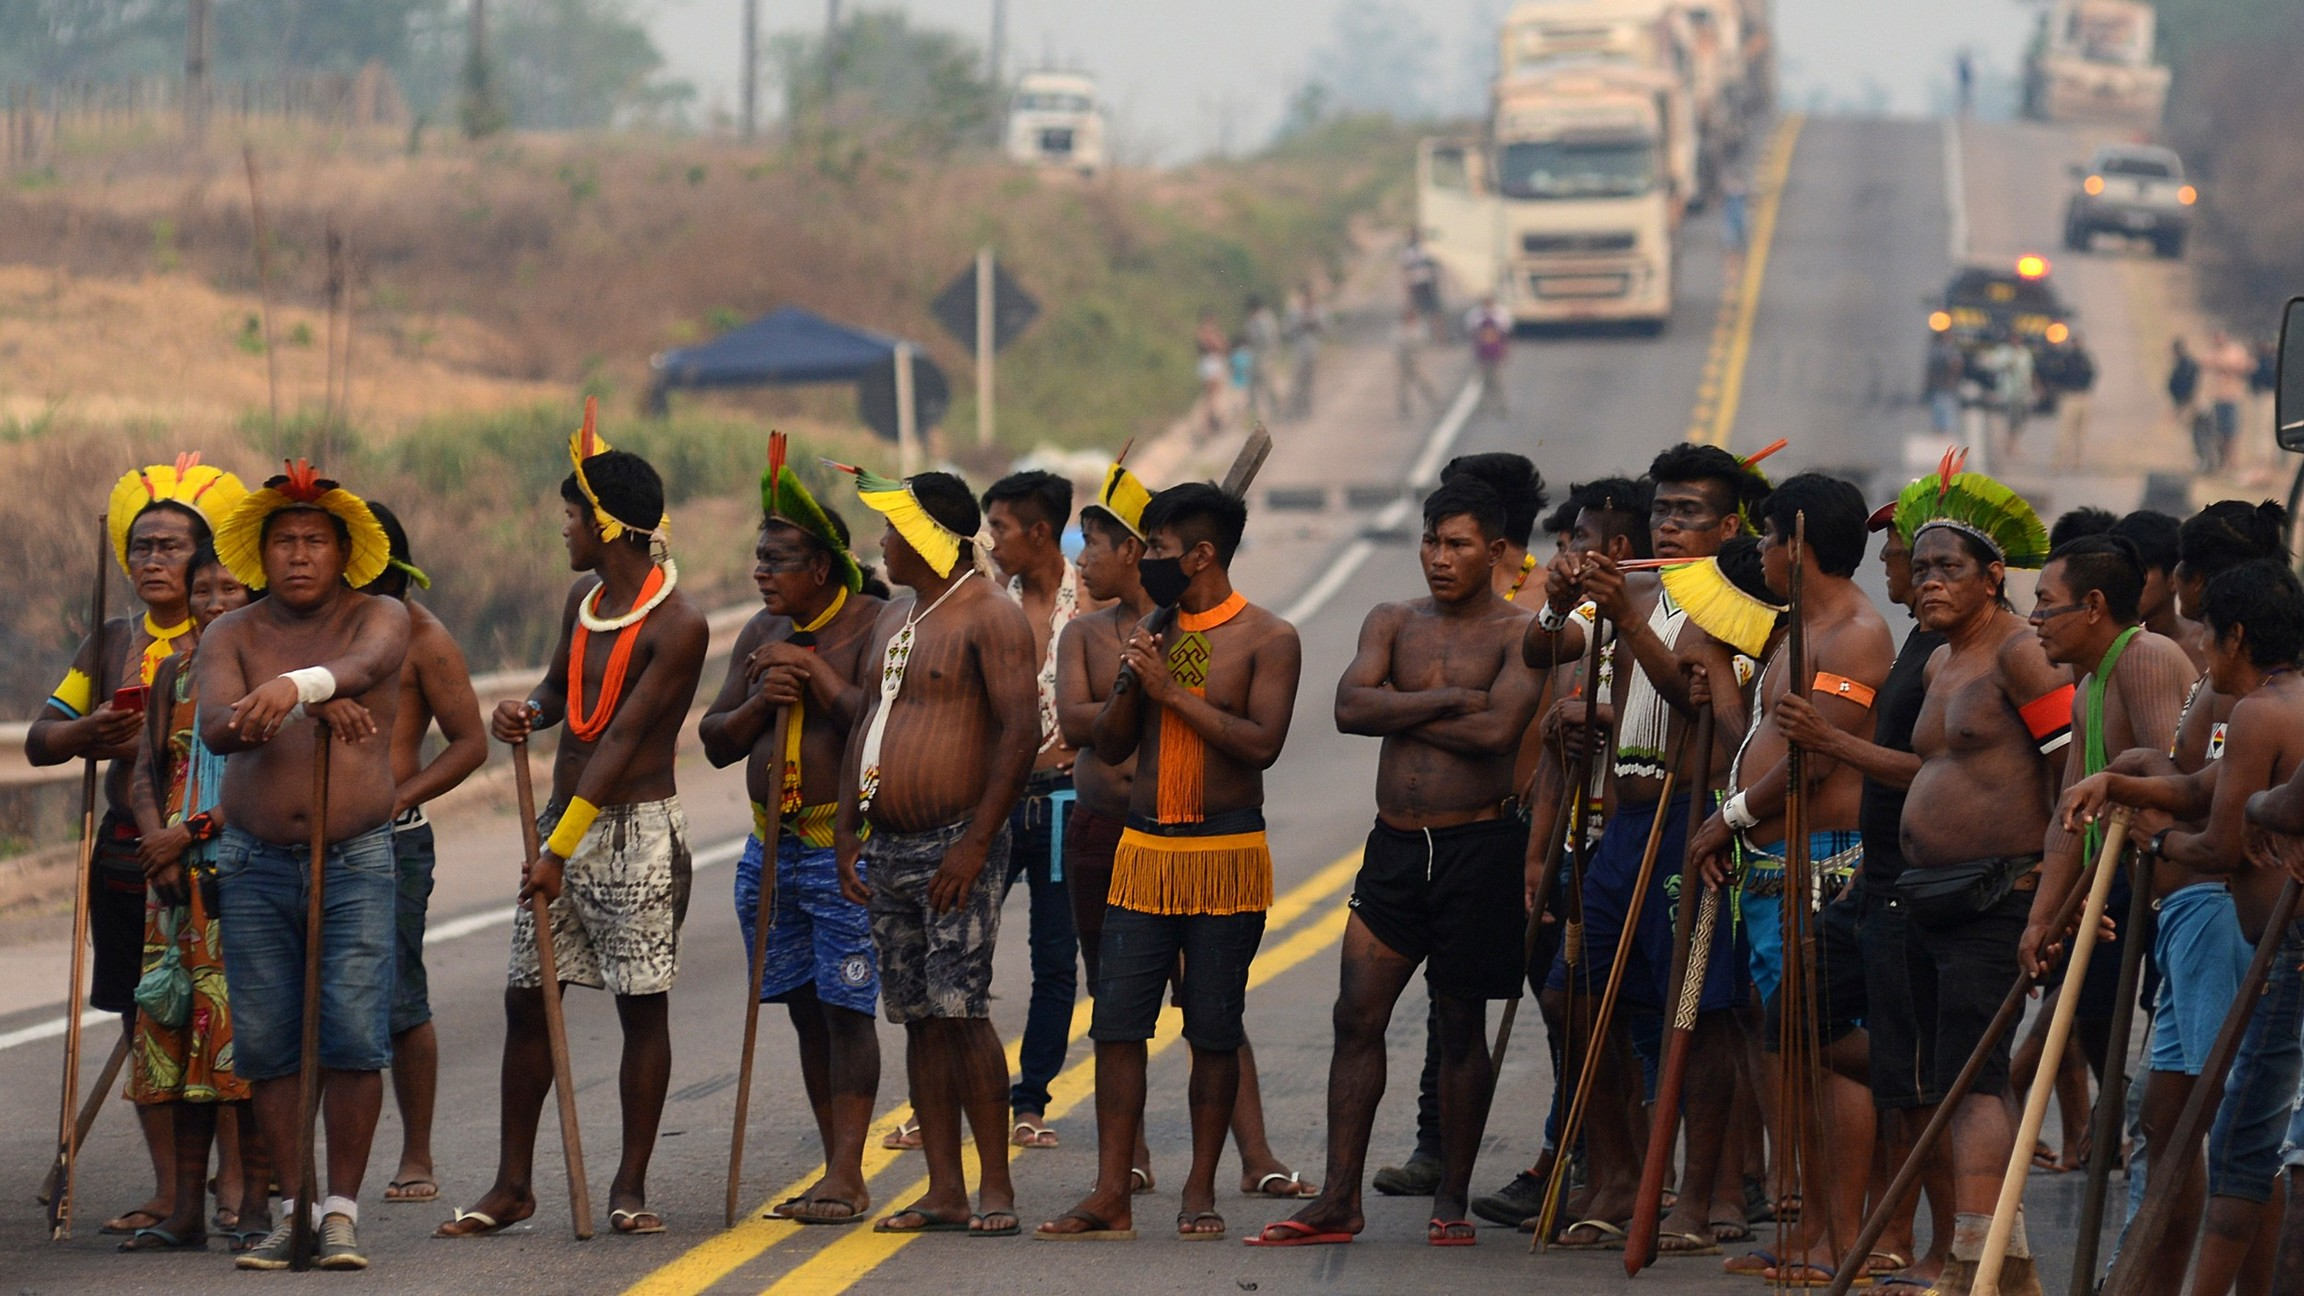 Kayapóindigenouspeople blockBrazil's BR 163 national highway, as they protest against the government measures in theindigenouslands to avoid the spread of the coronavirus disease (COVID-19), in Novo Progresso, Parástate,Brazil, Aug.17, 2020.